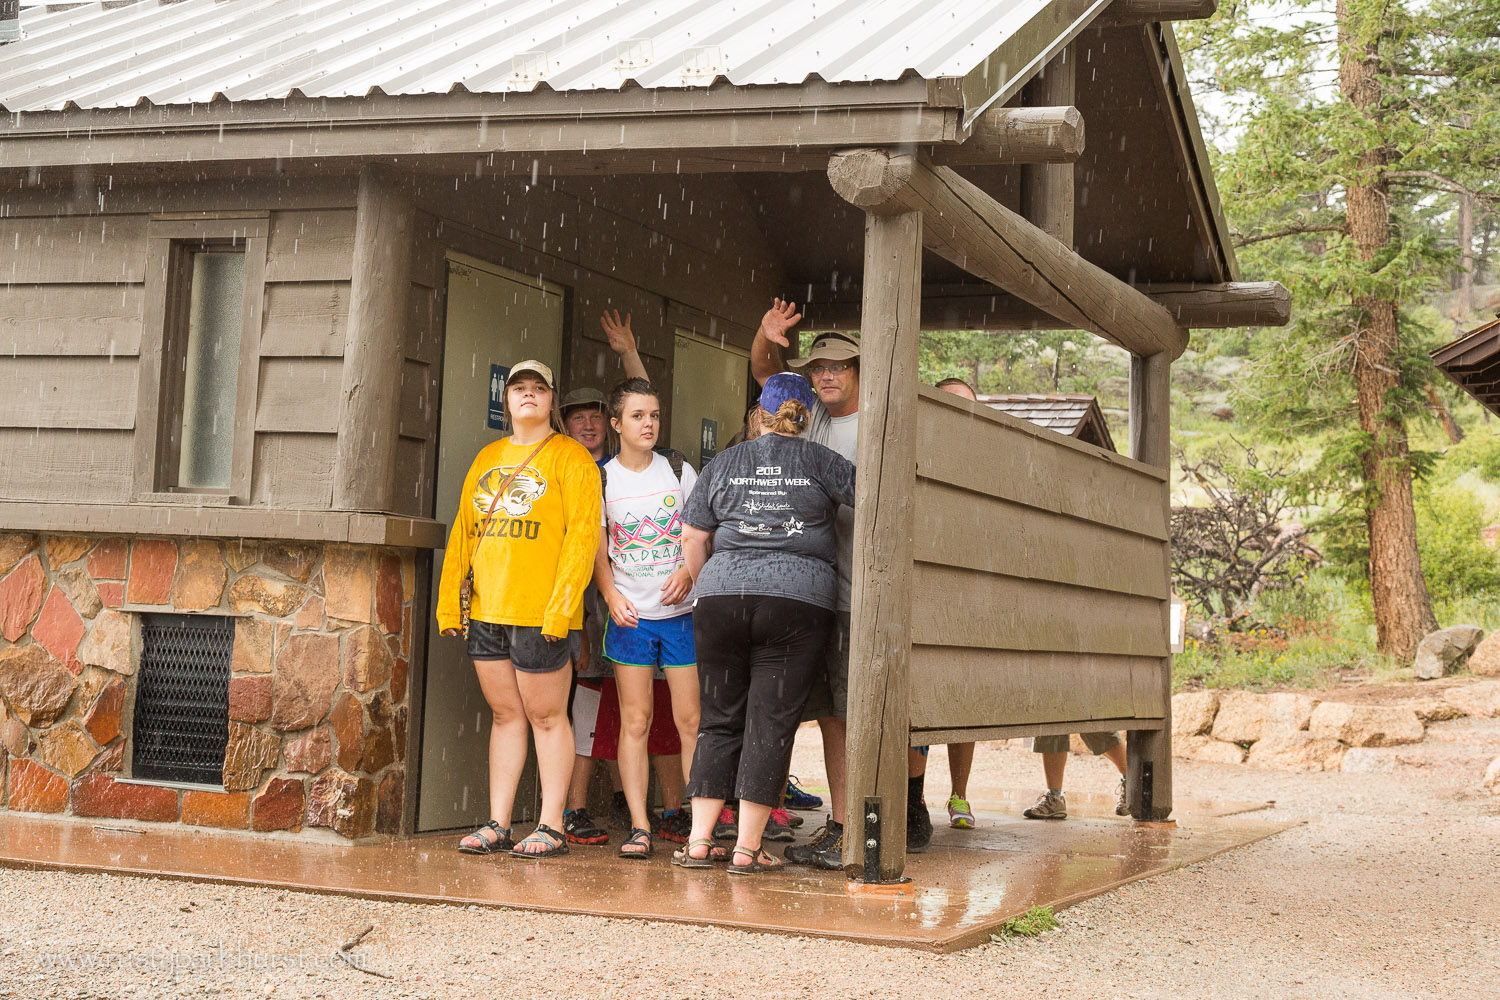 We made it back to the trailhead just as the rain started. We stayed mostly dry and had a great time.